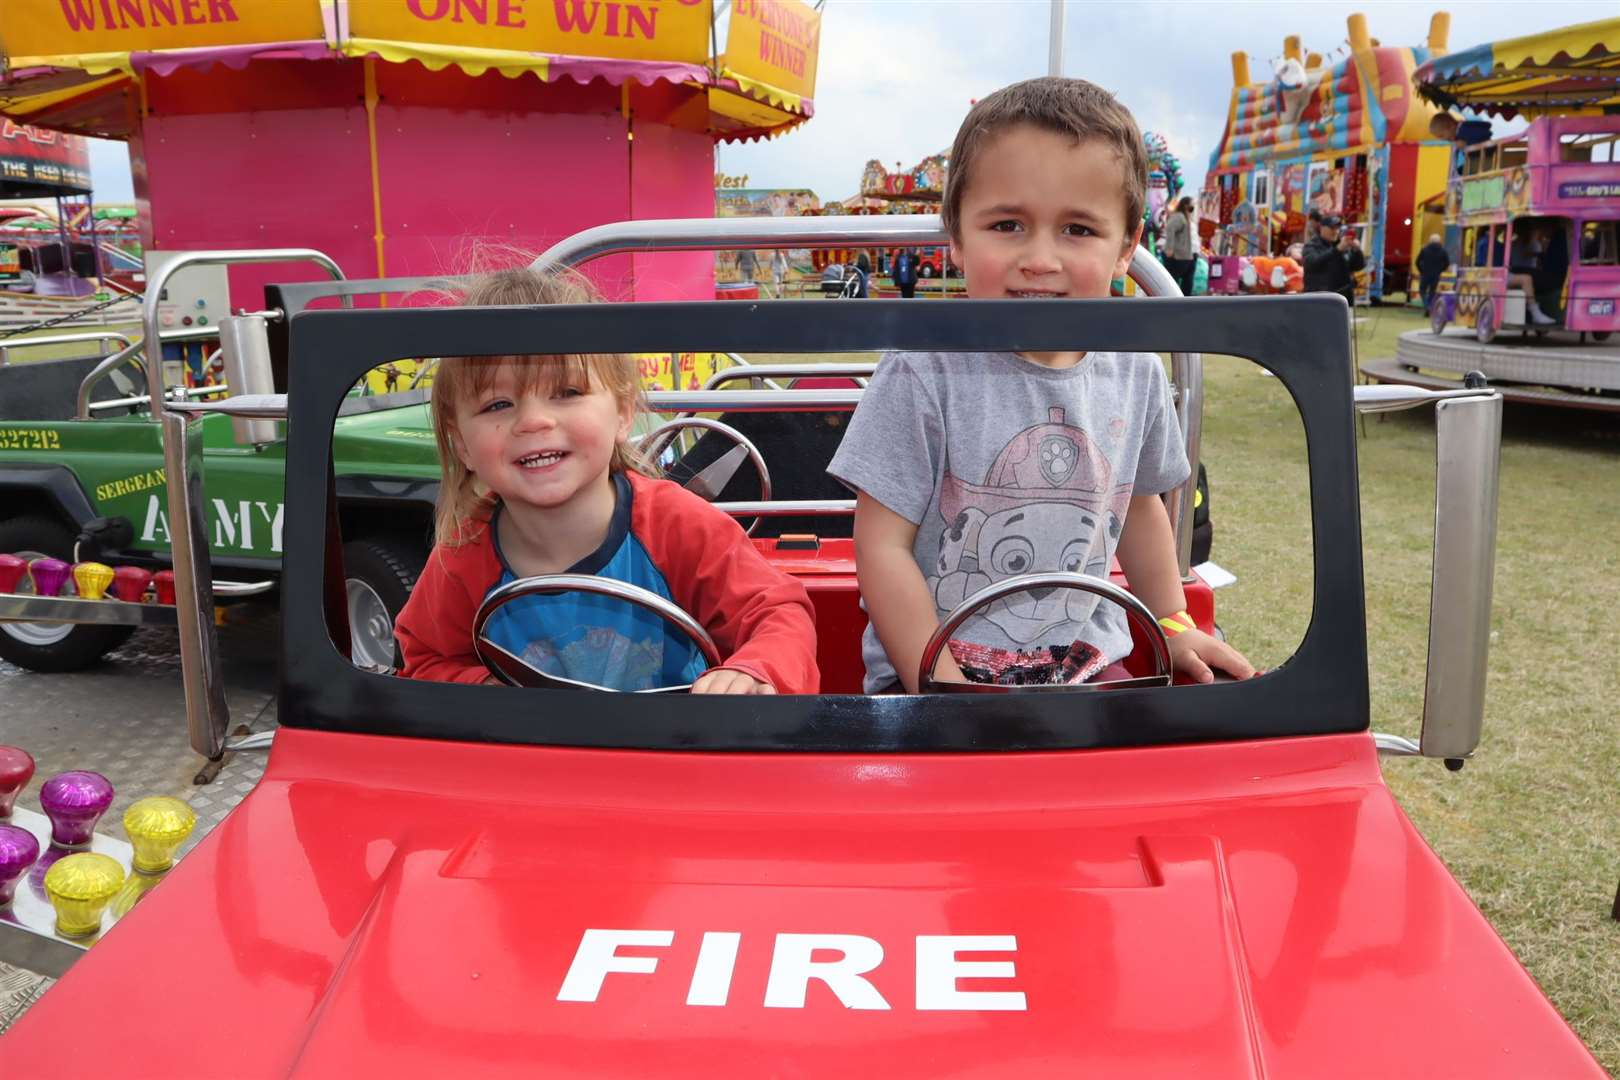 Charlotte Philcox, 2, and her brother Ralph, 4, rode the fire truck at Smith's funfair at Barton's Point, Sheerness